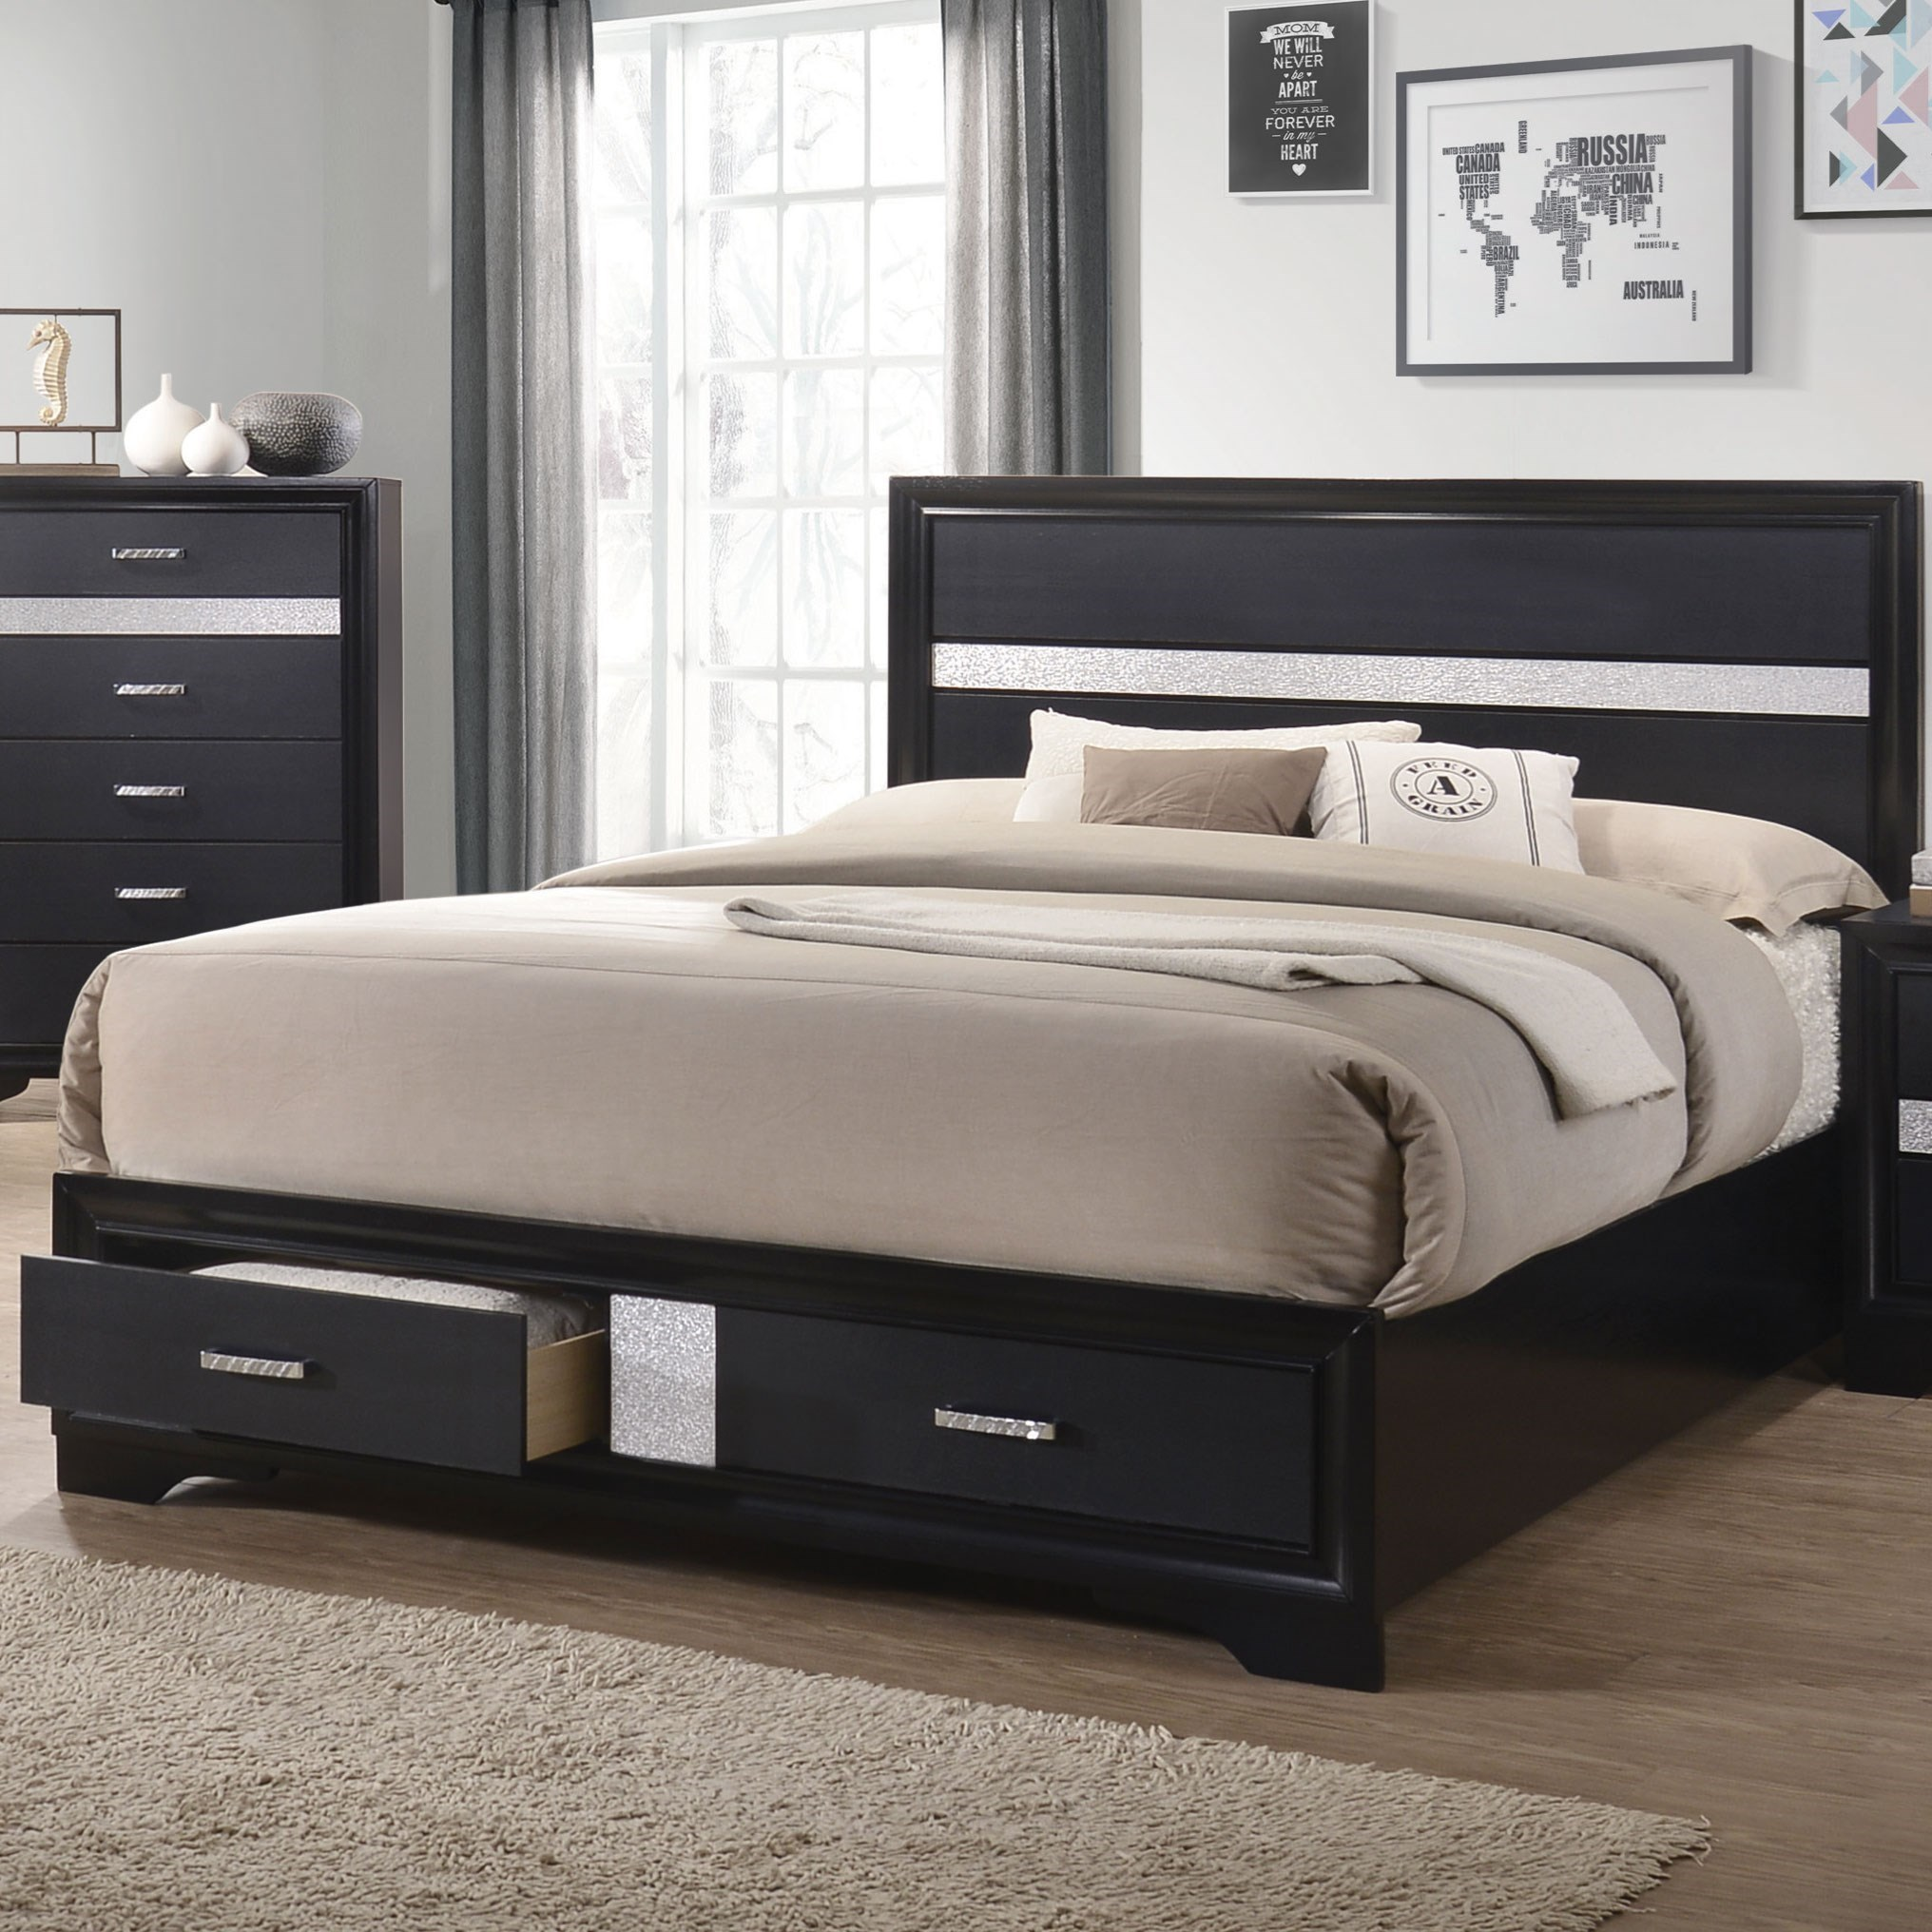 Storage Beds Australia Miranda Queen Storage Bed With 2 Dovetail Drawers By Coaster At Dunk Bright Furniture